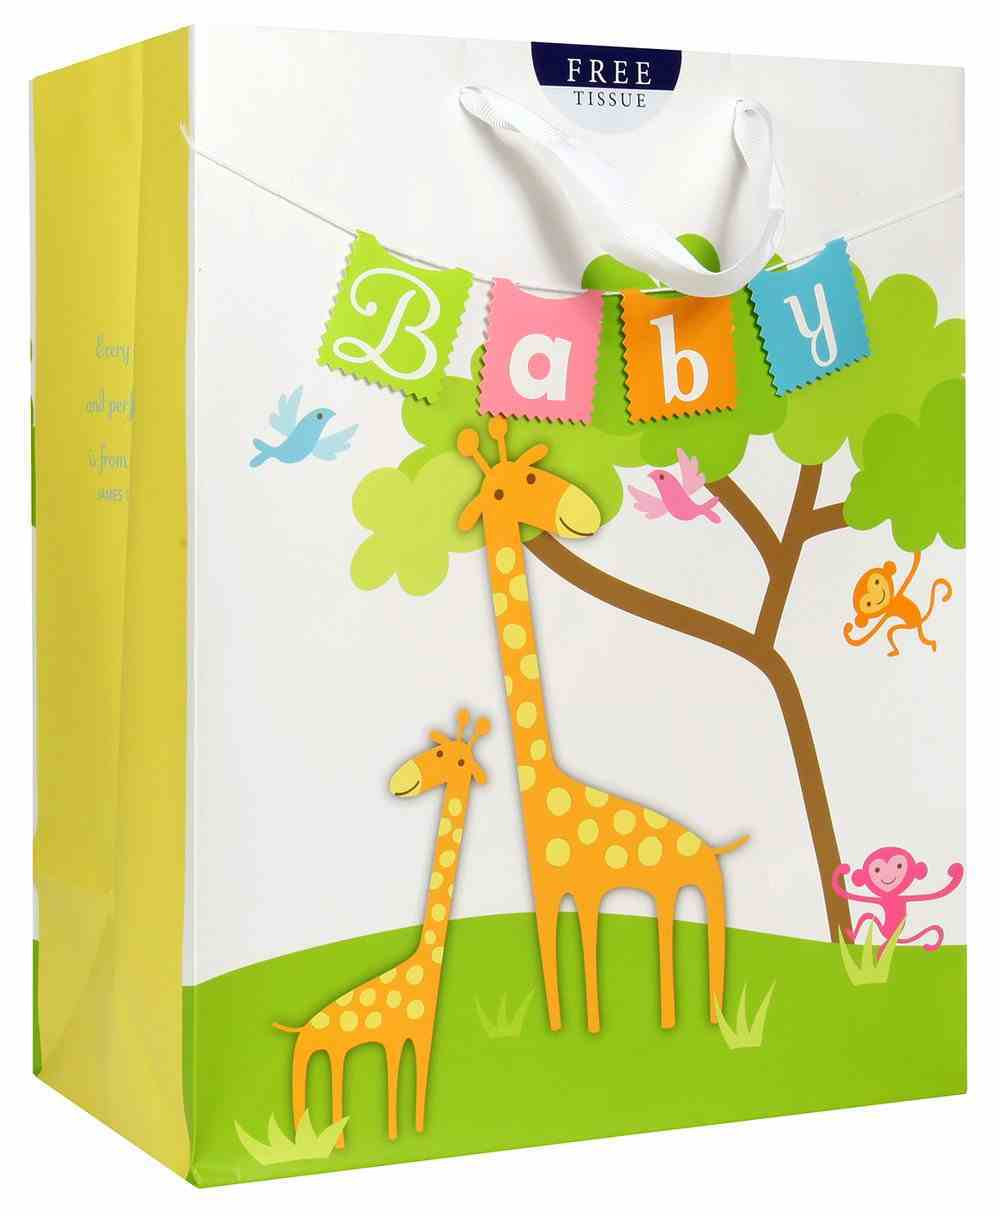 Gift Bag Large: Baby Giraffe (Incl Two Sheets Tissue Paper & Gift Tag) Stationery